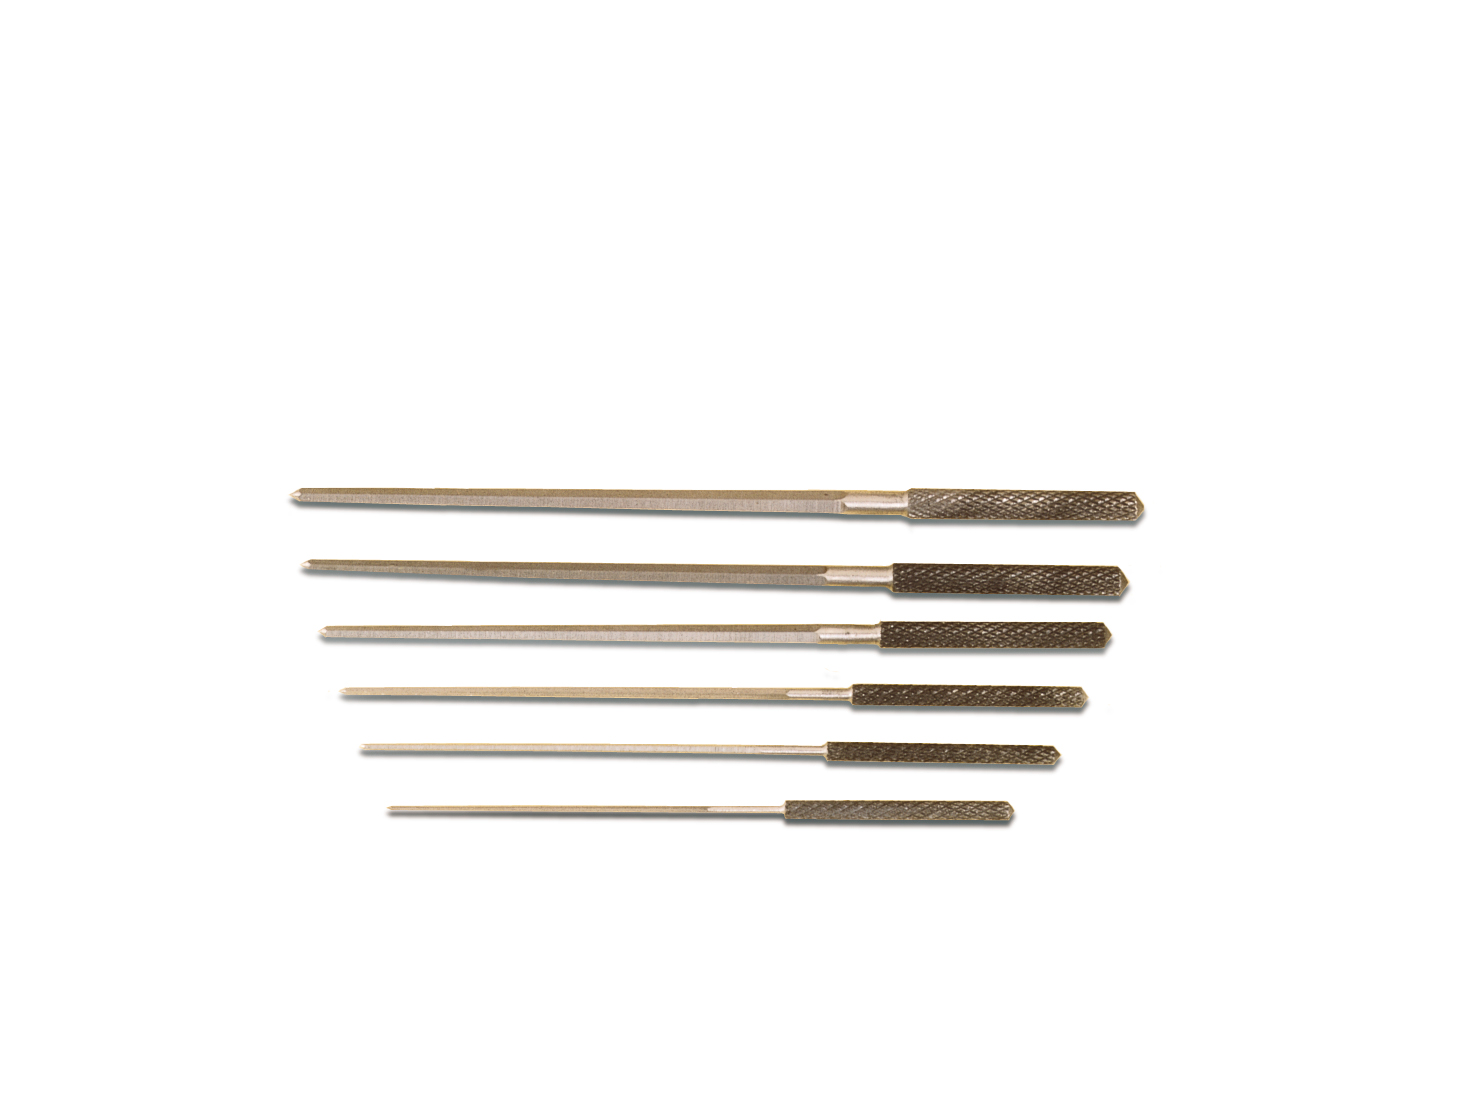 BR510 Grobet Set of 6 Cutting Broaches with Knurled Handles